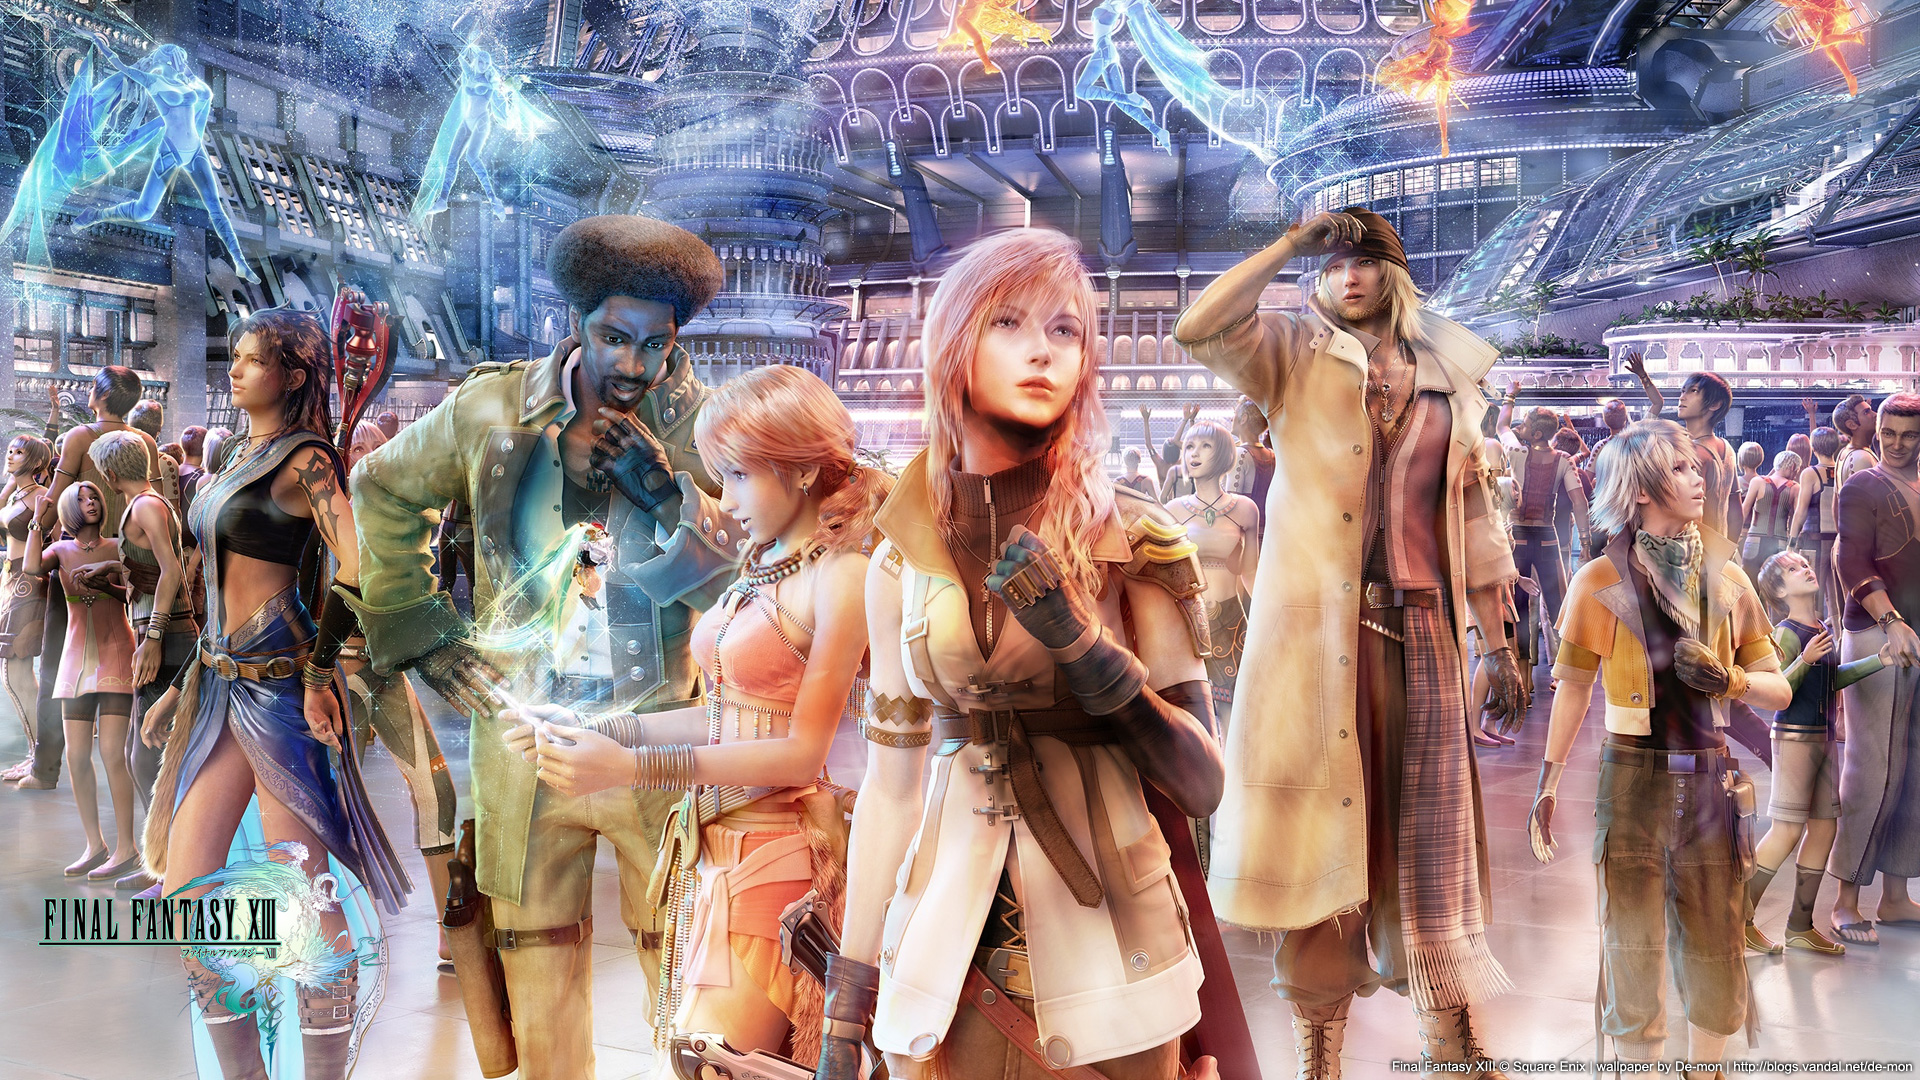 Final Fantasy 13: A Game for the Masses